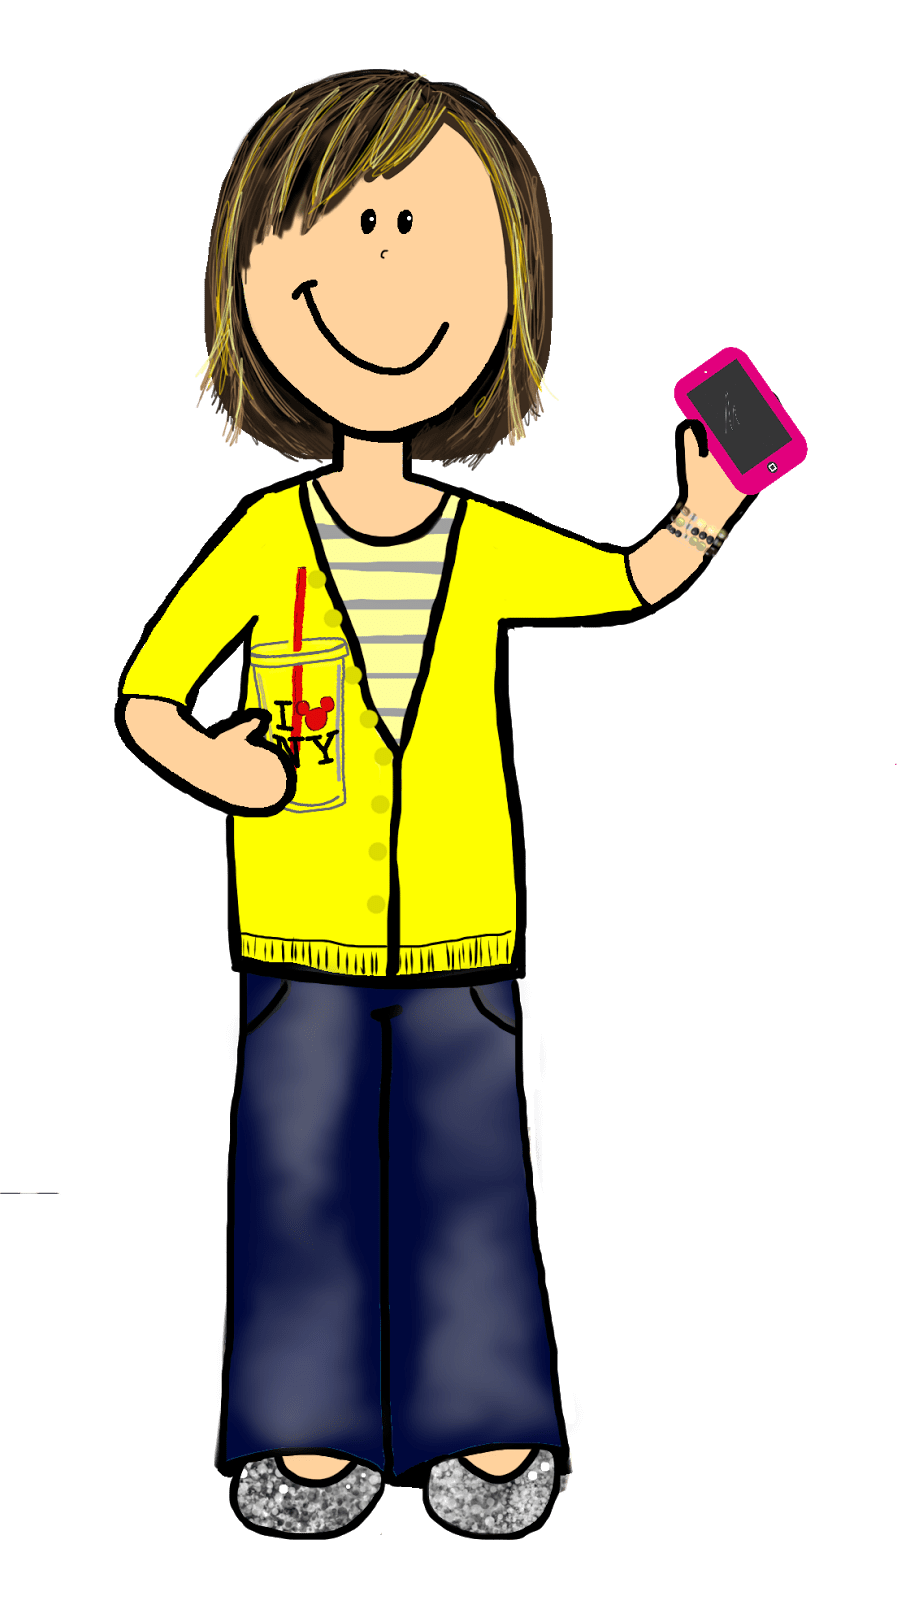 hight resolution of clip art pictures people dromgfl top clipart